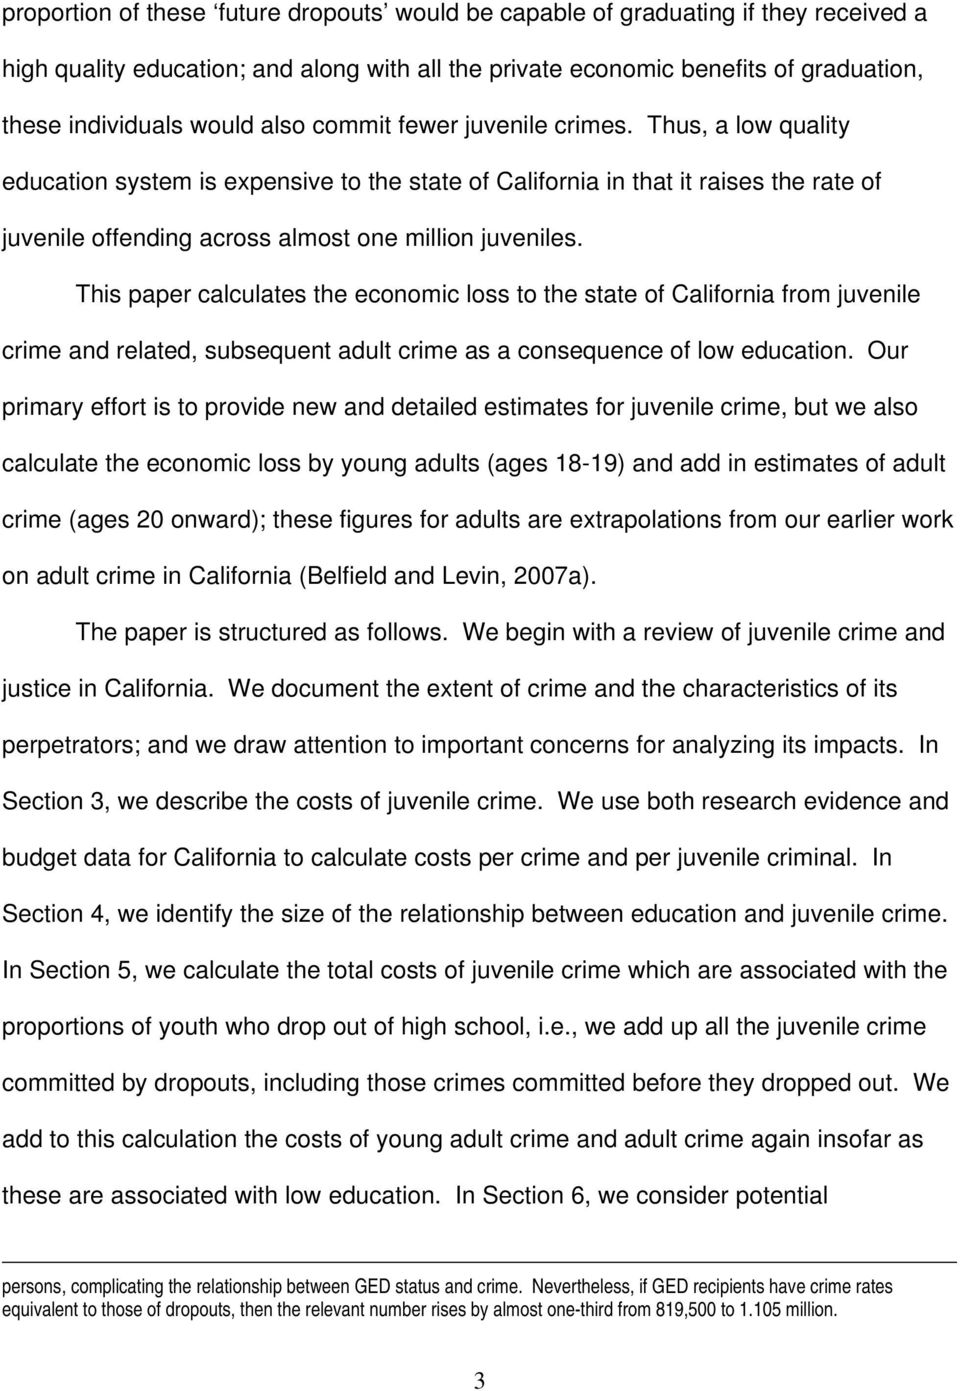 This paper calculates the economic loss to the state of California from juvenile crime and related, subsequent adult crime as a consequence of low education.